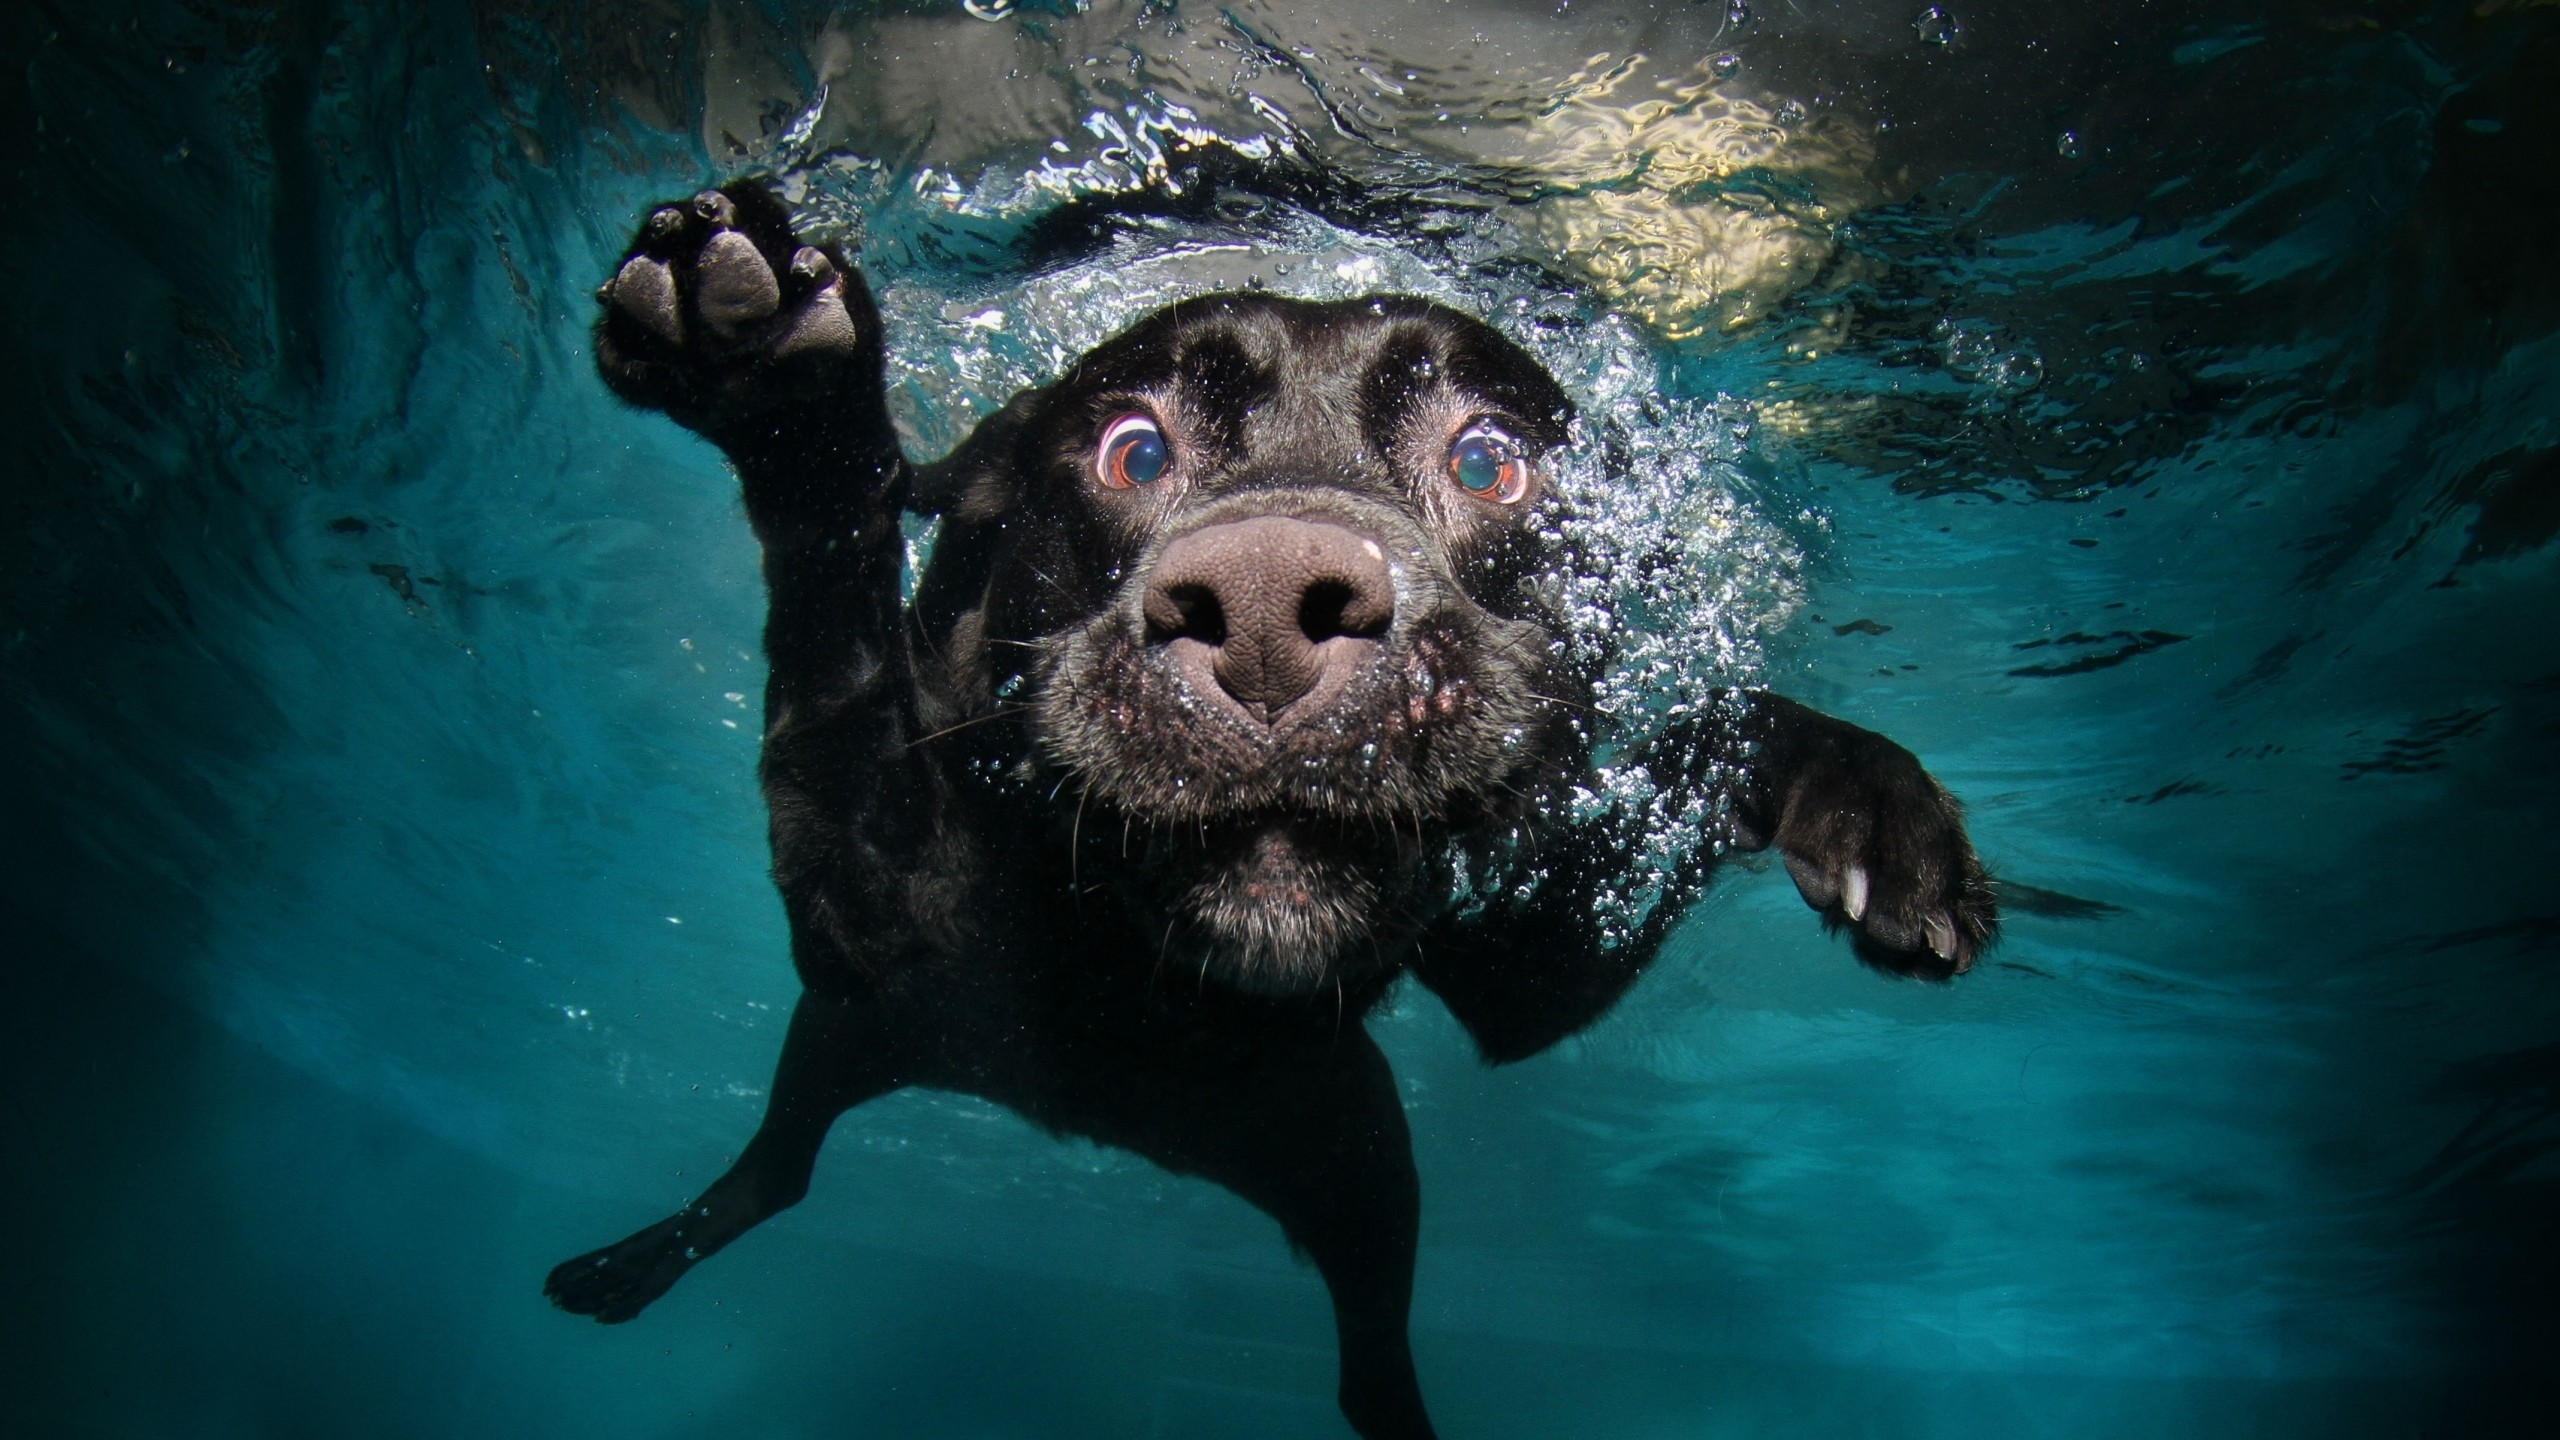 2560x1440 Preview wallpaper dog, black, underwater, swimming, water